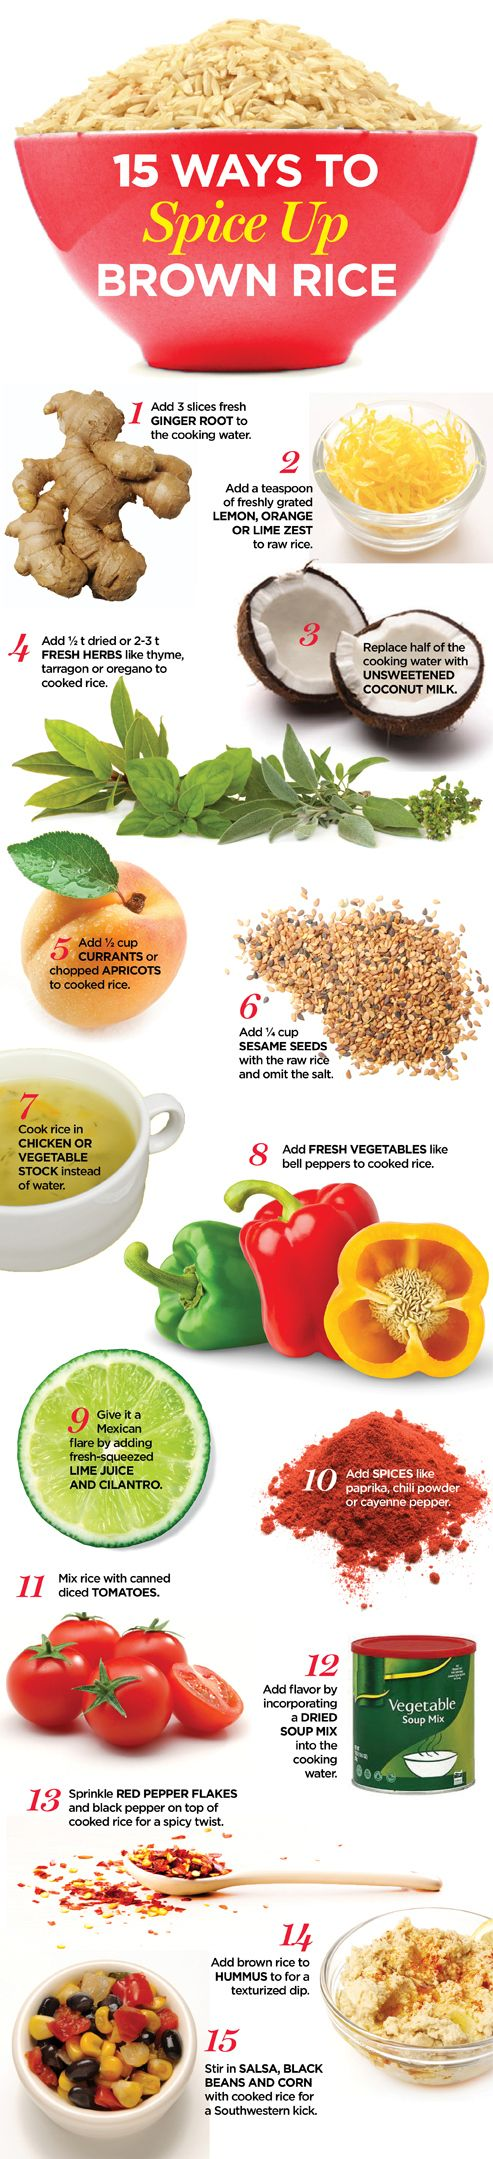 15 Ways to Spice Up Rice, Brown Rice, Quinoa, or Couscous.  Also, you can mix prepared rice/quinoa/couscous with prepared cream soup of choice (i.e. cream of chicken).  Mmmmm.